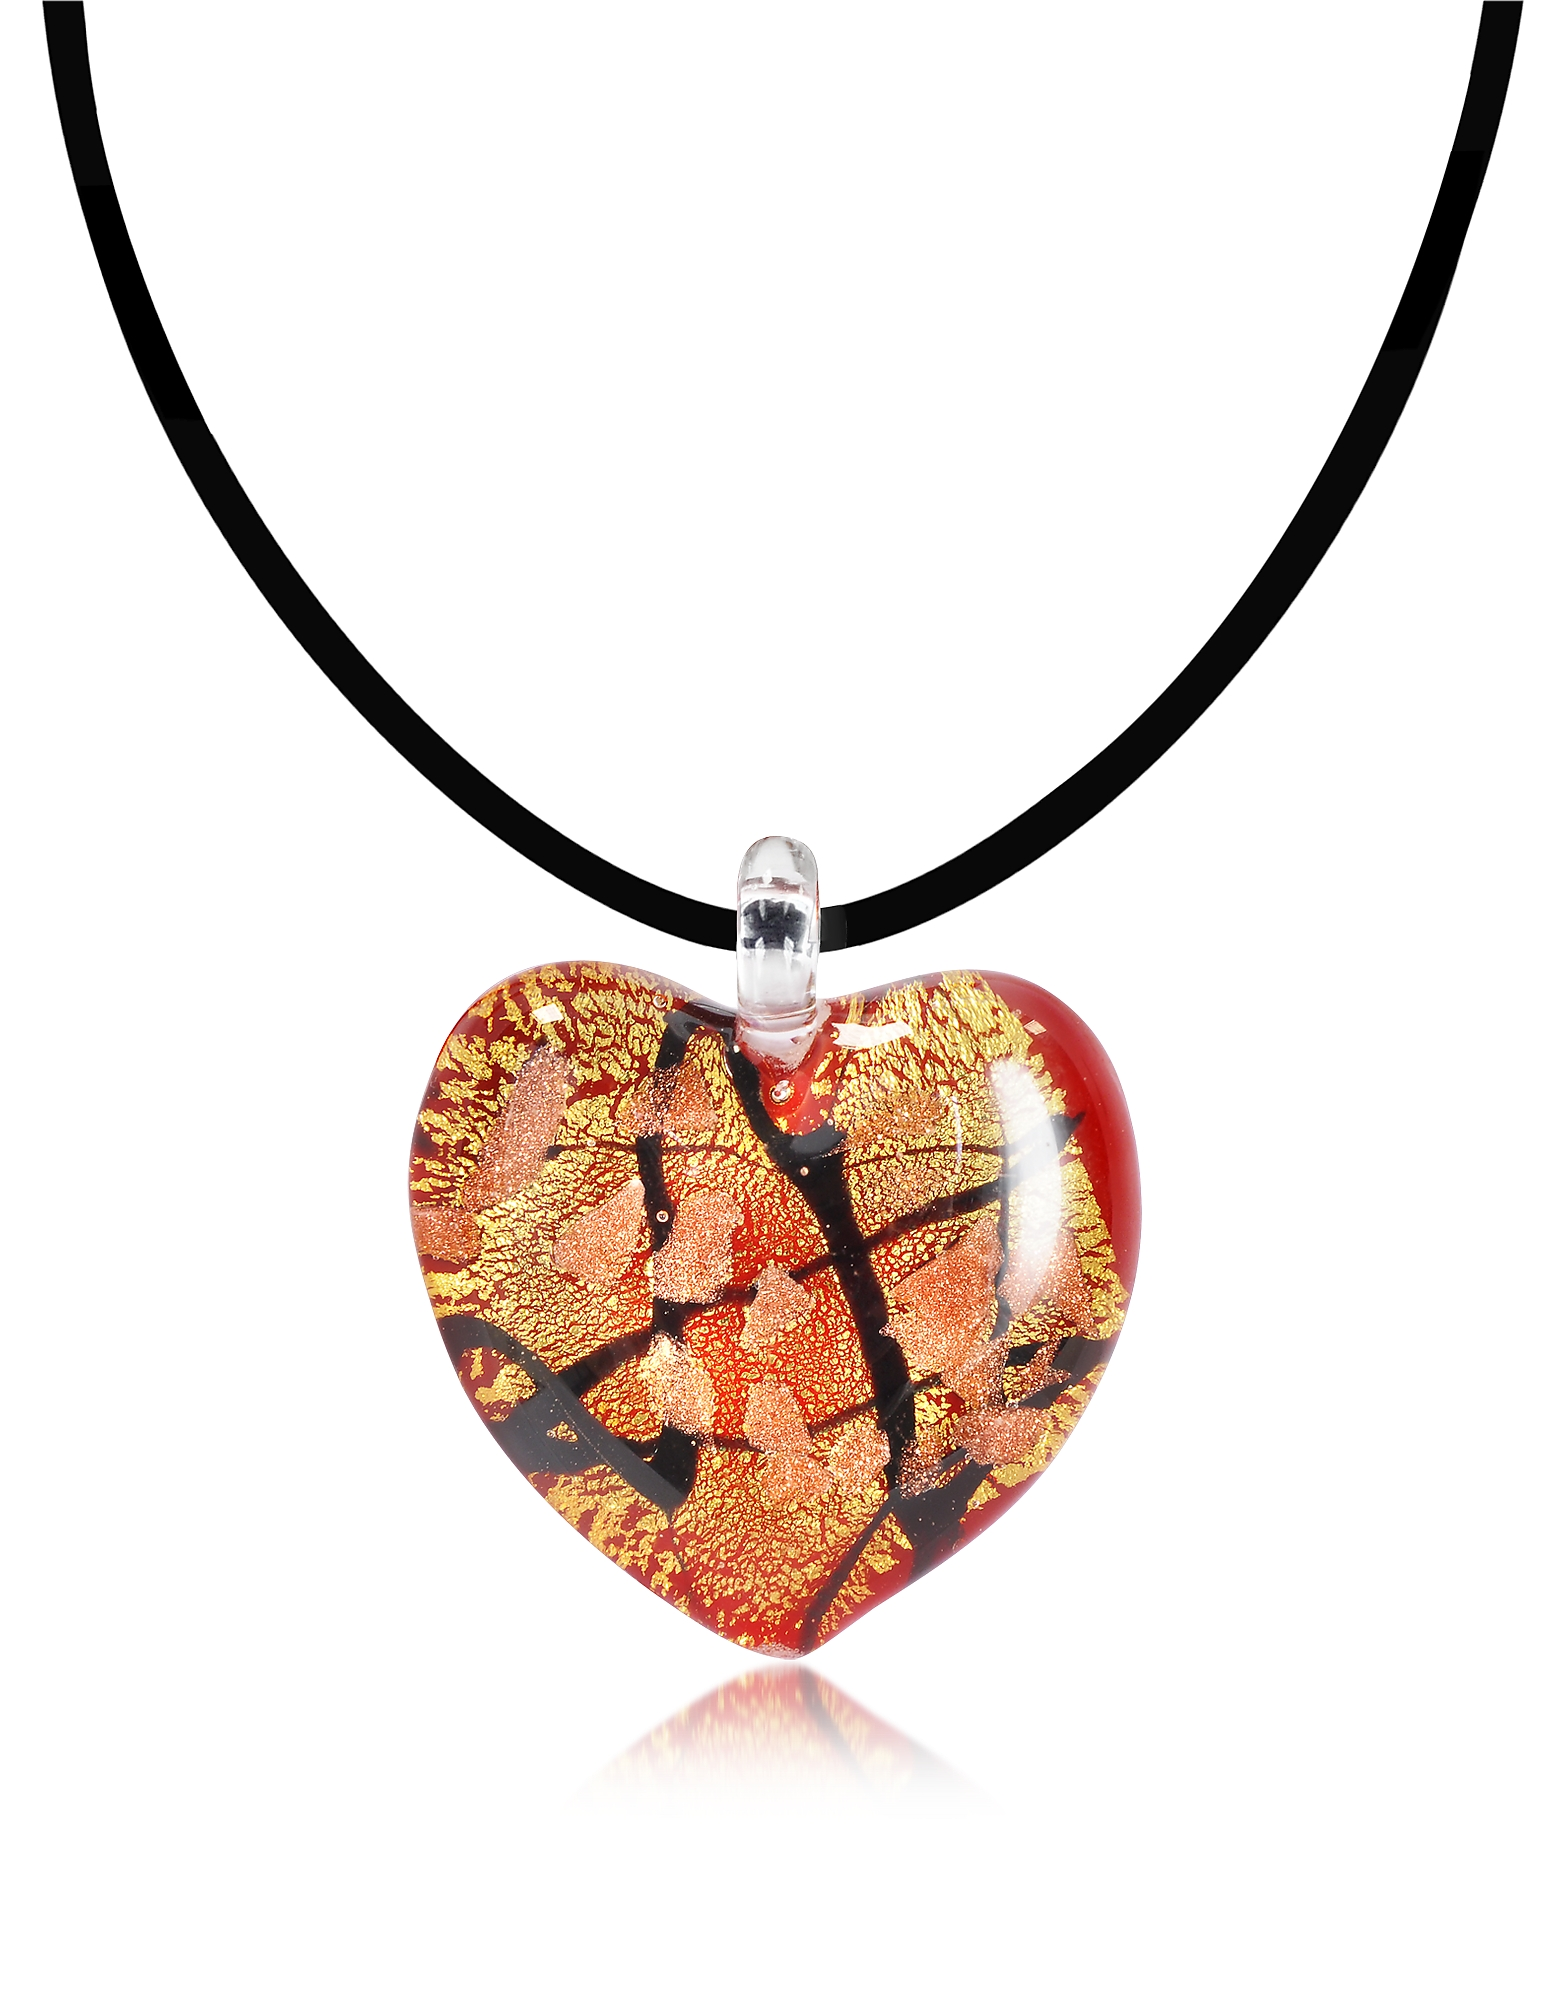 Antica Murrina Designer Necklaces, Passione - Red, Gold and Black Murano Glass Heart Pendant